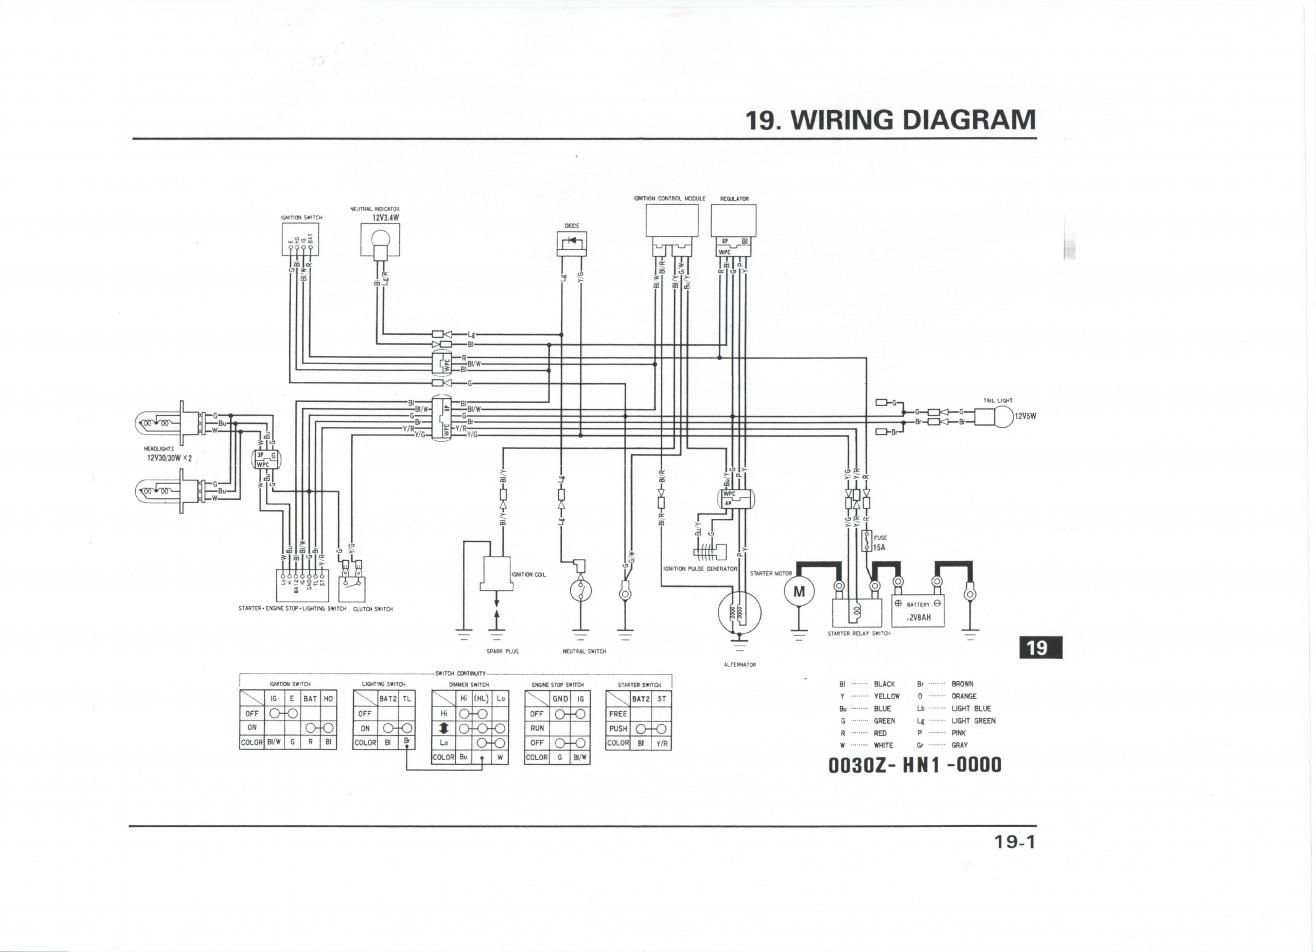 medium resolution of 99 honda fourtrax 300 wiring diagram free picture wiring diagramtrx300ex wiring diagram automotive wiring diagrams 1986